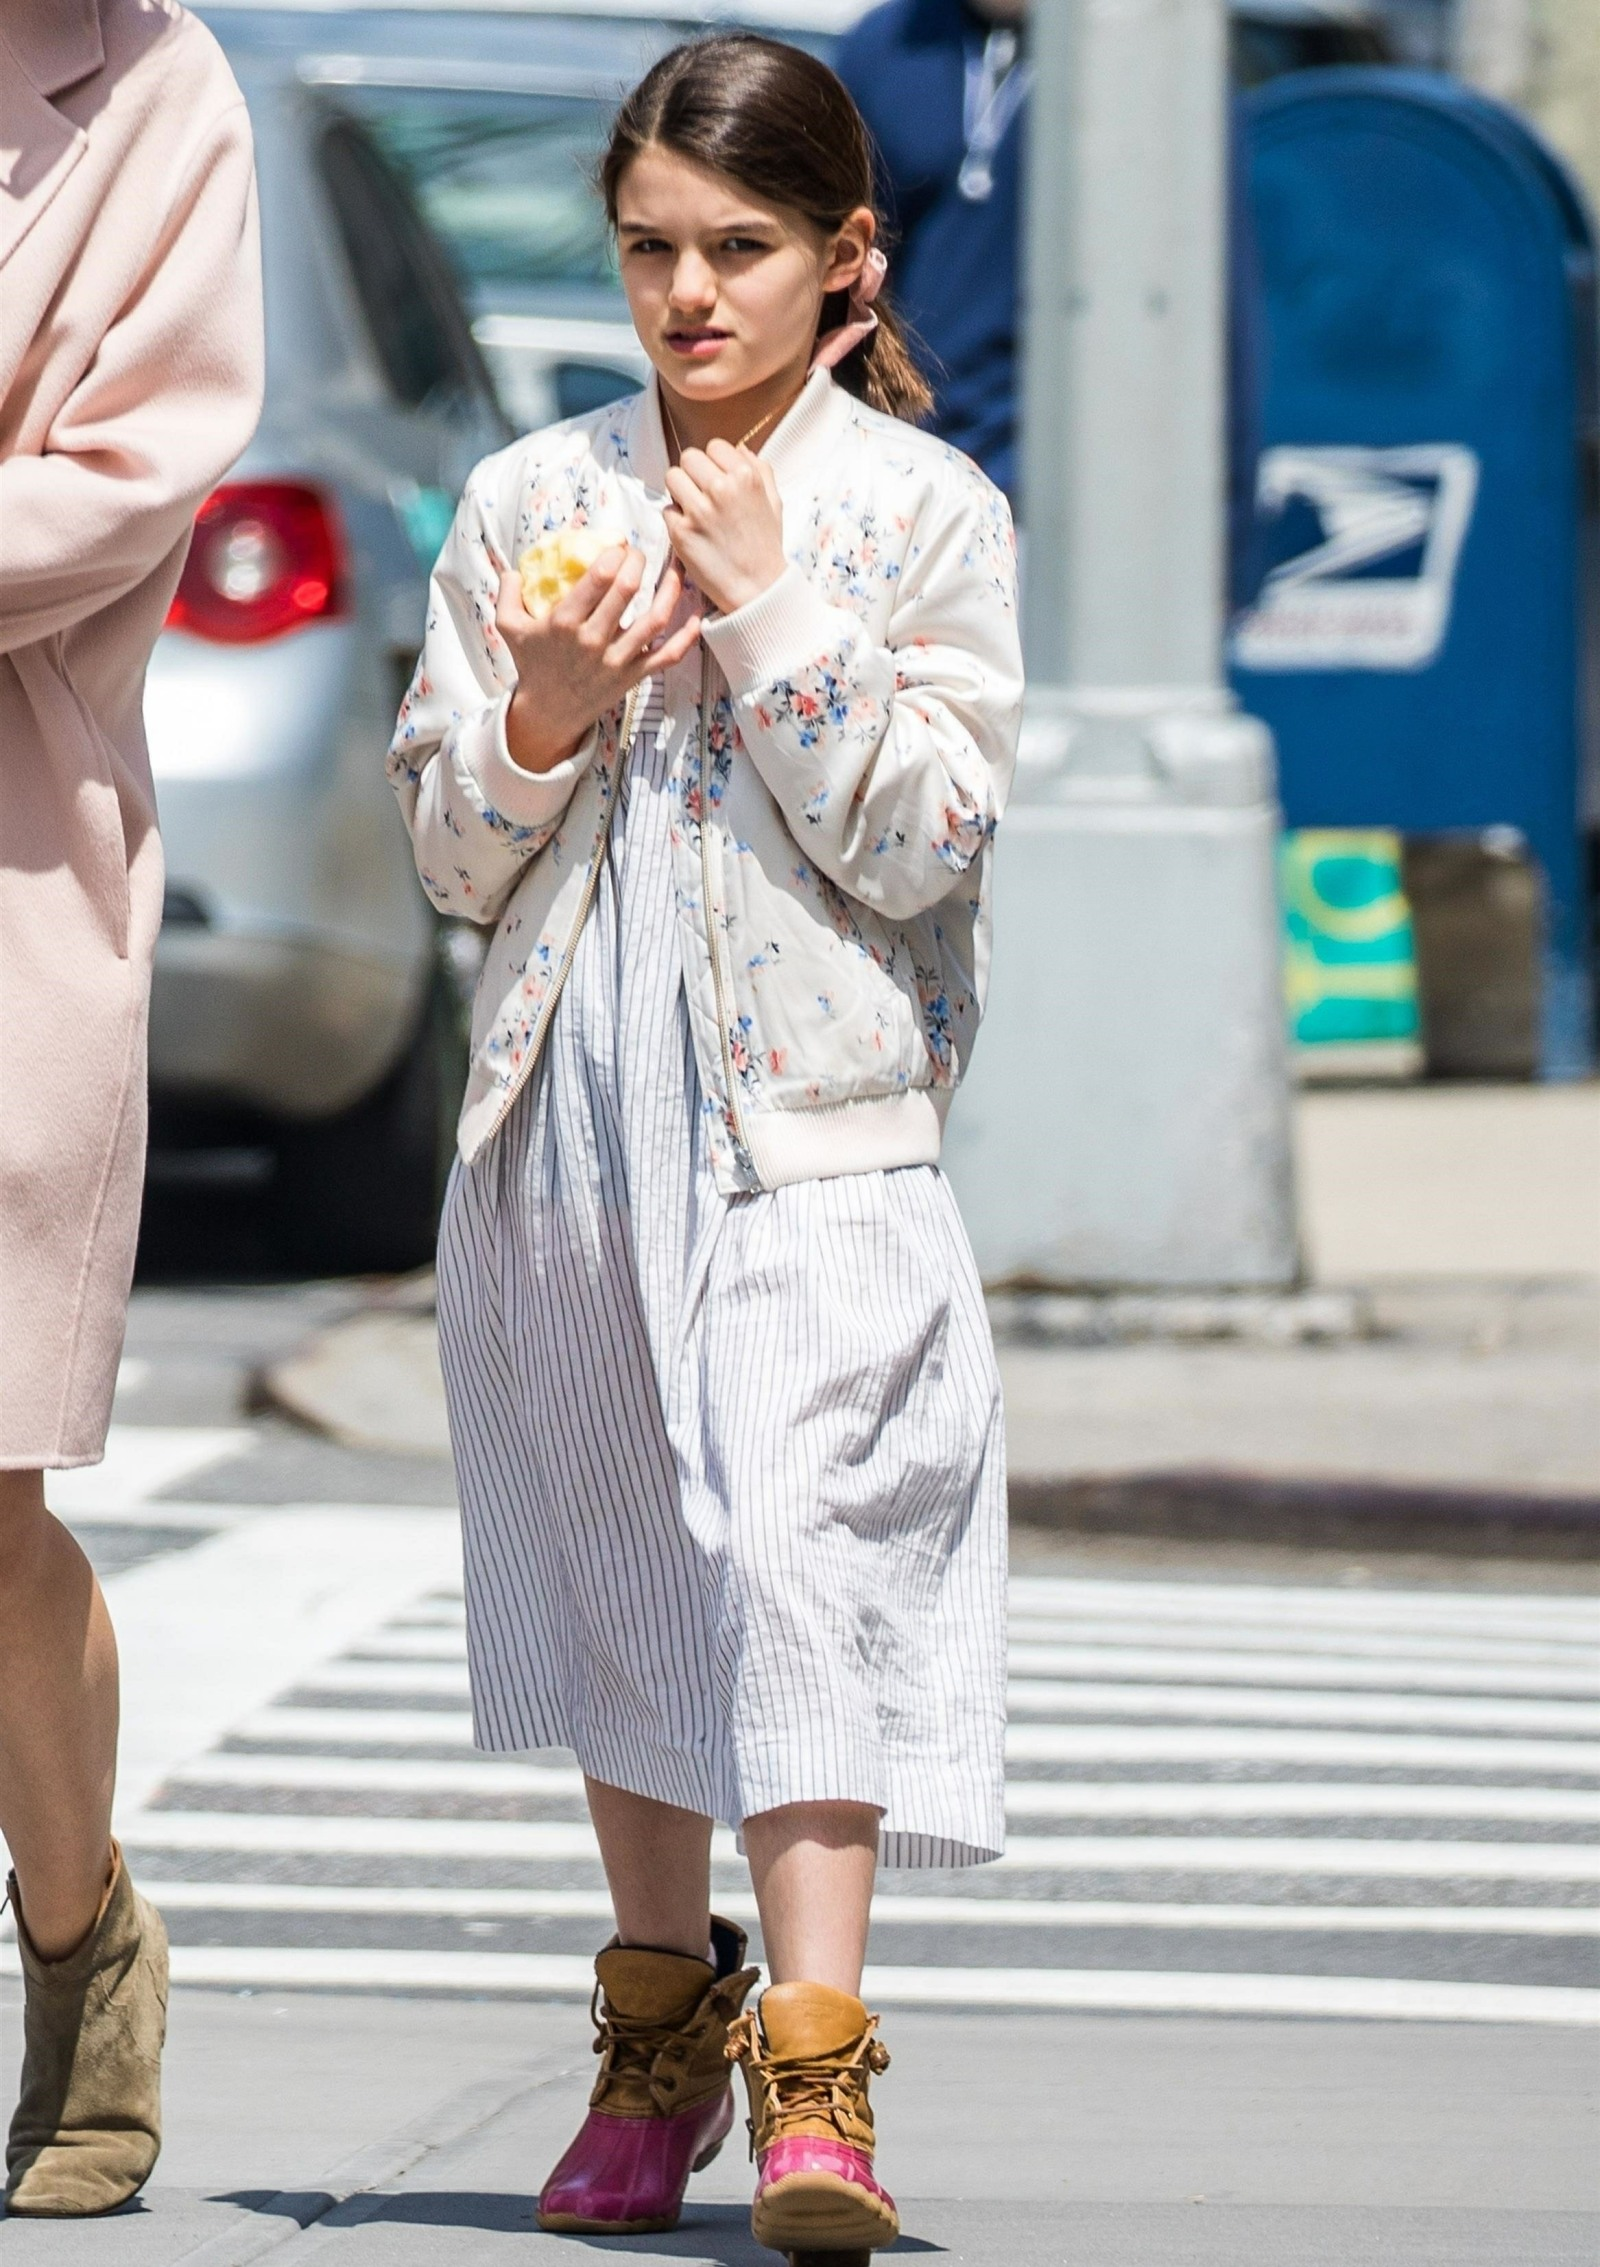 Katie Holmes and Suri Cruise sport light spring colors while strolling in Manhattan